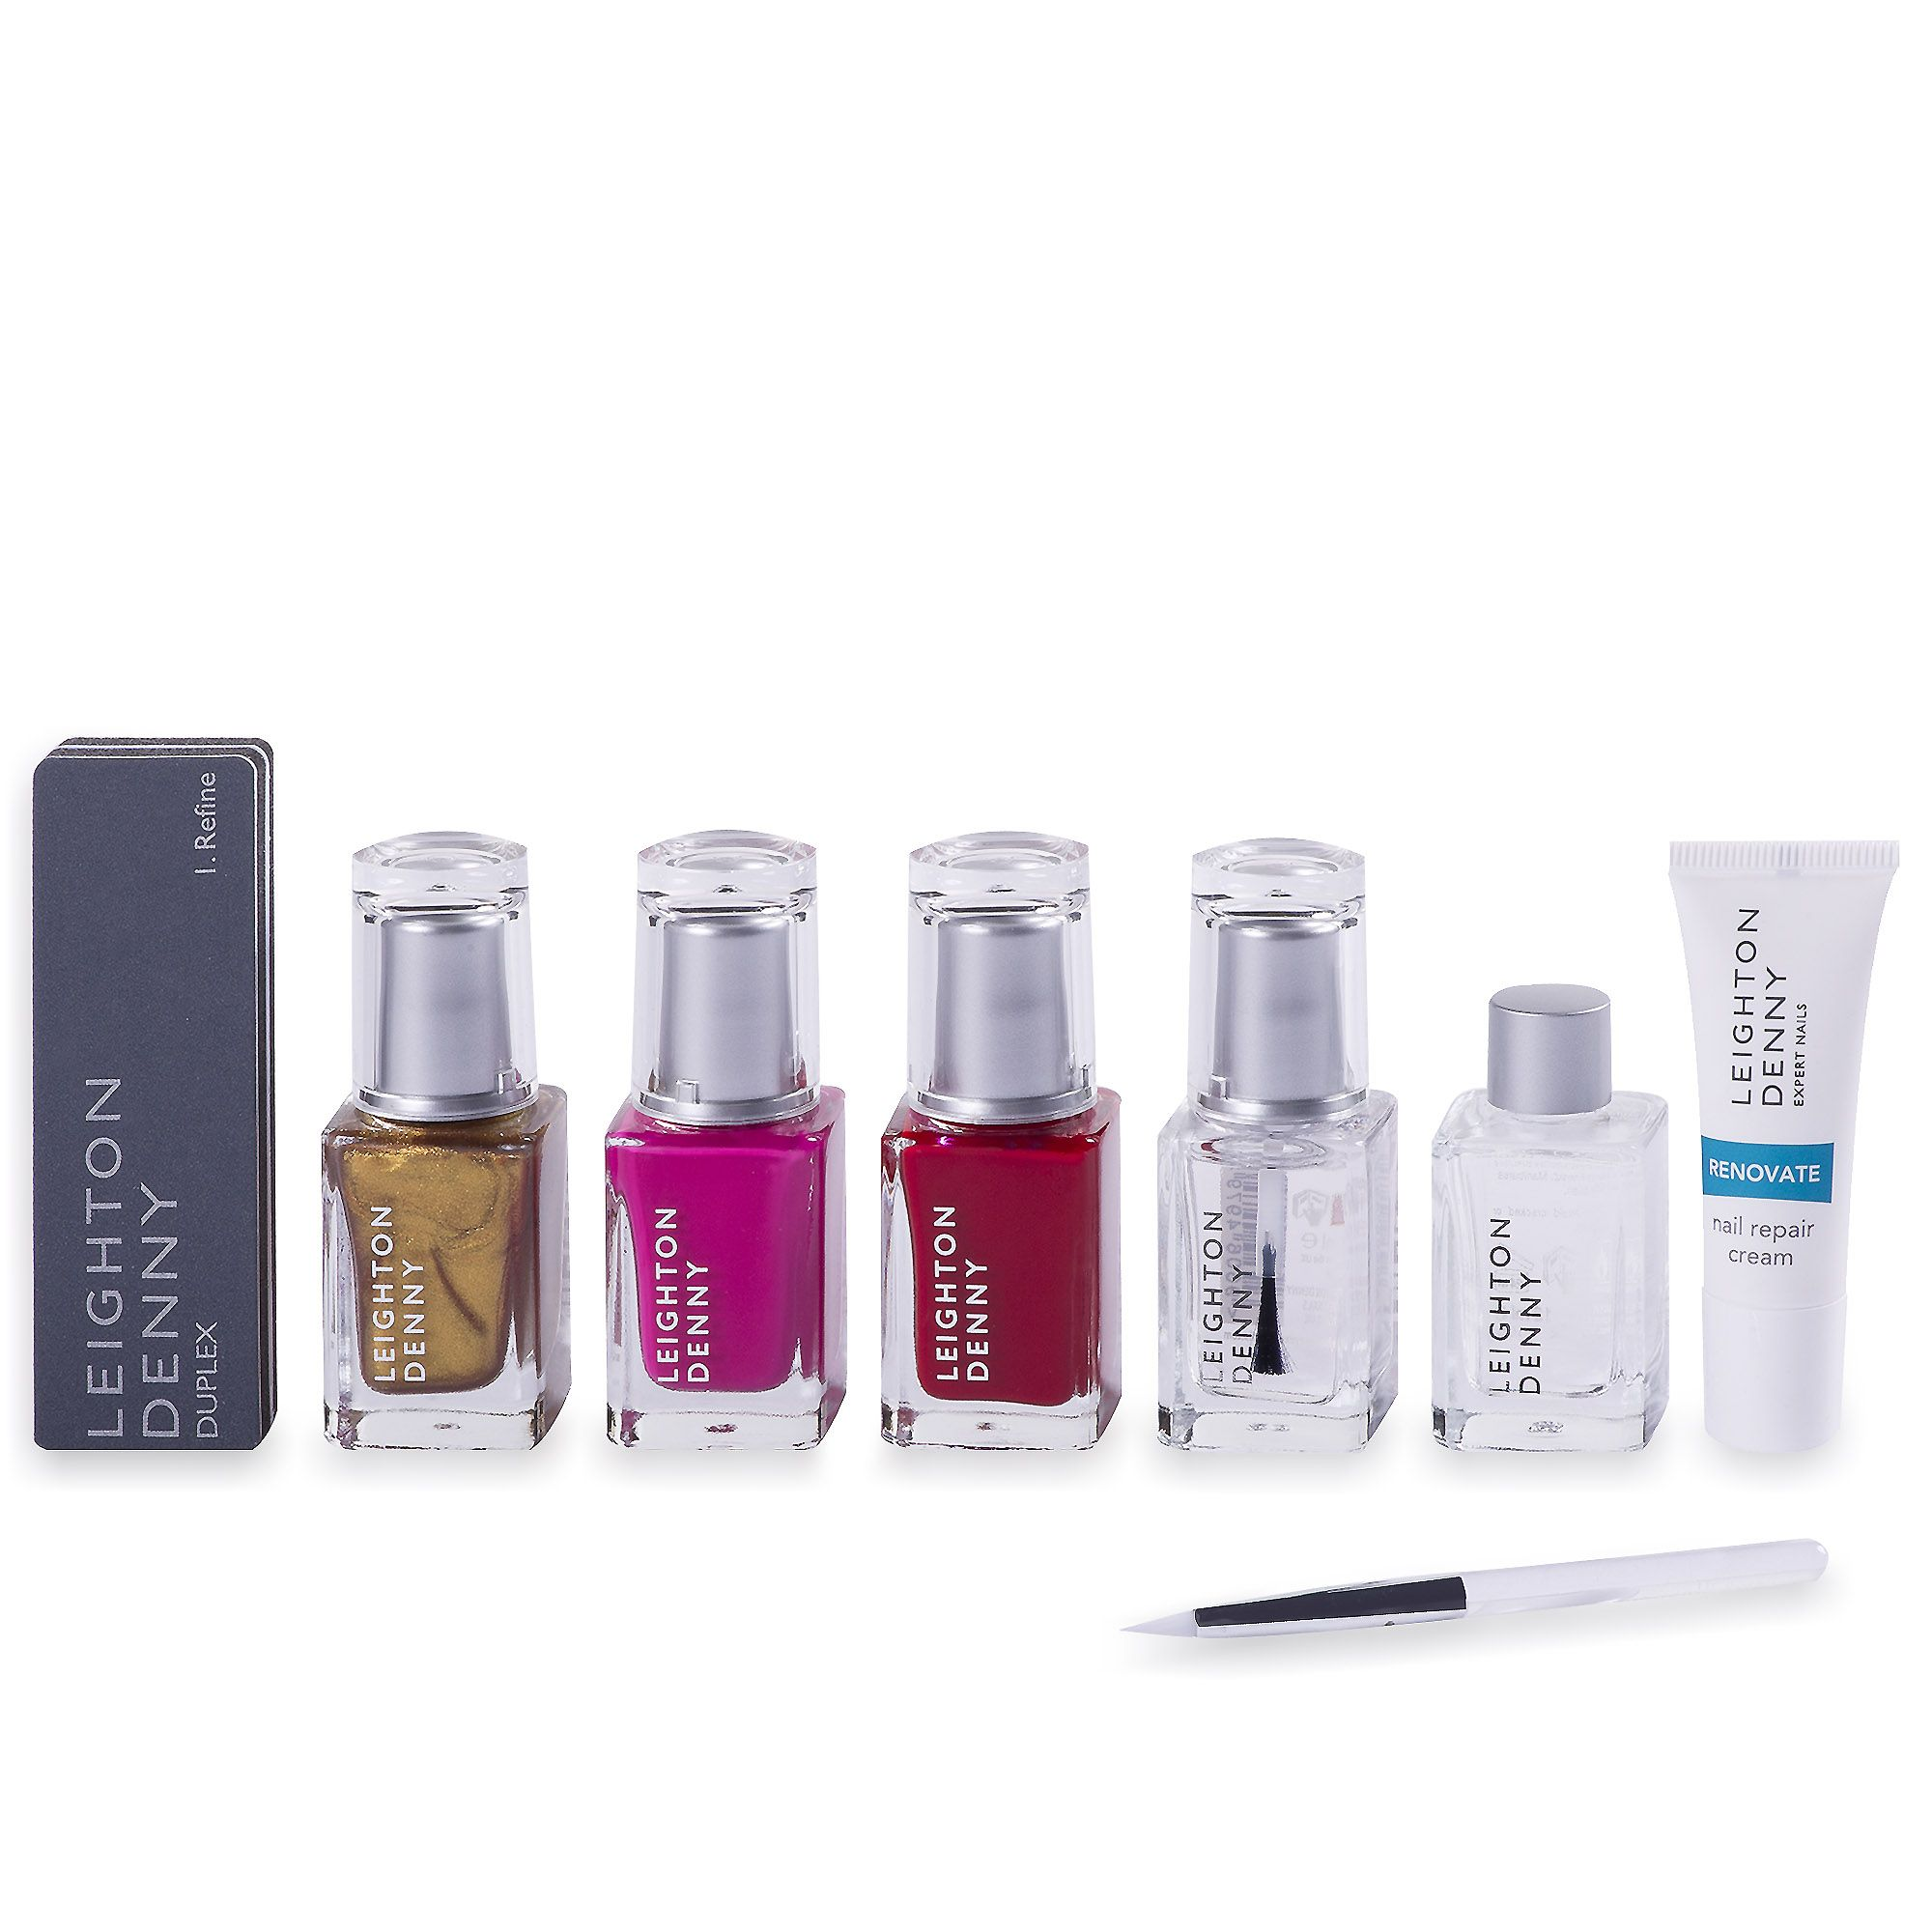 Leighton Denny Party Cocktail kit manicure completa e alla moda (7 pz)